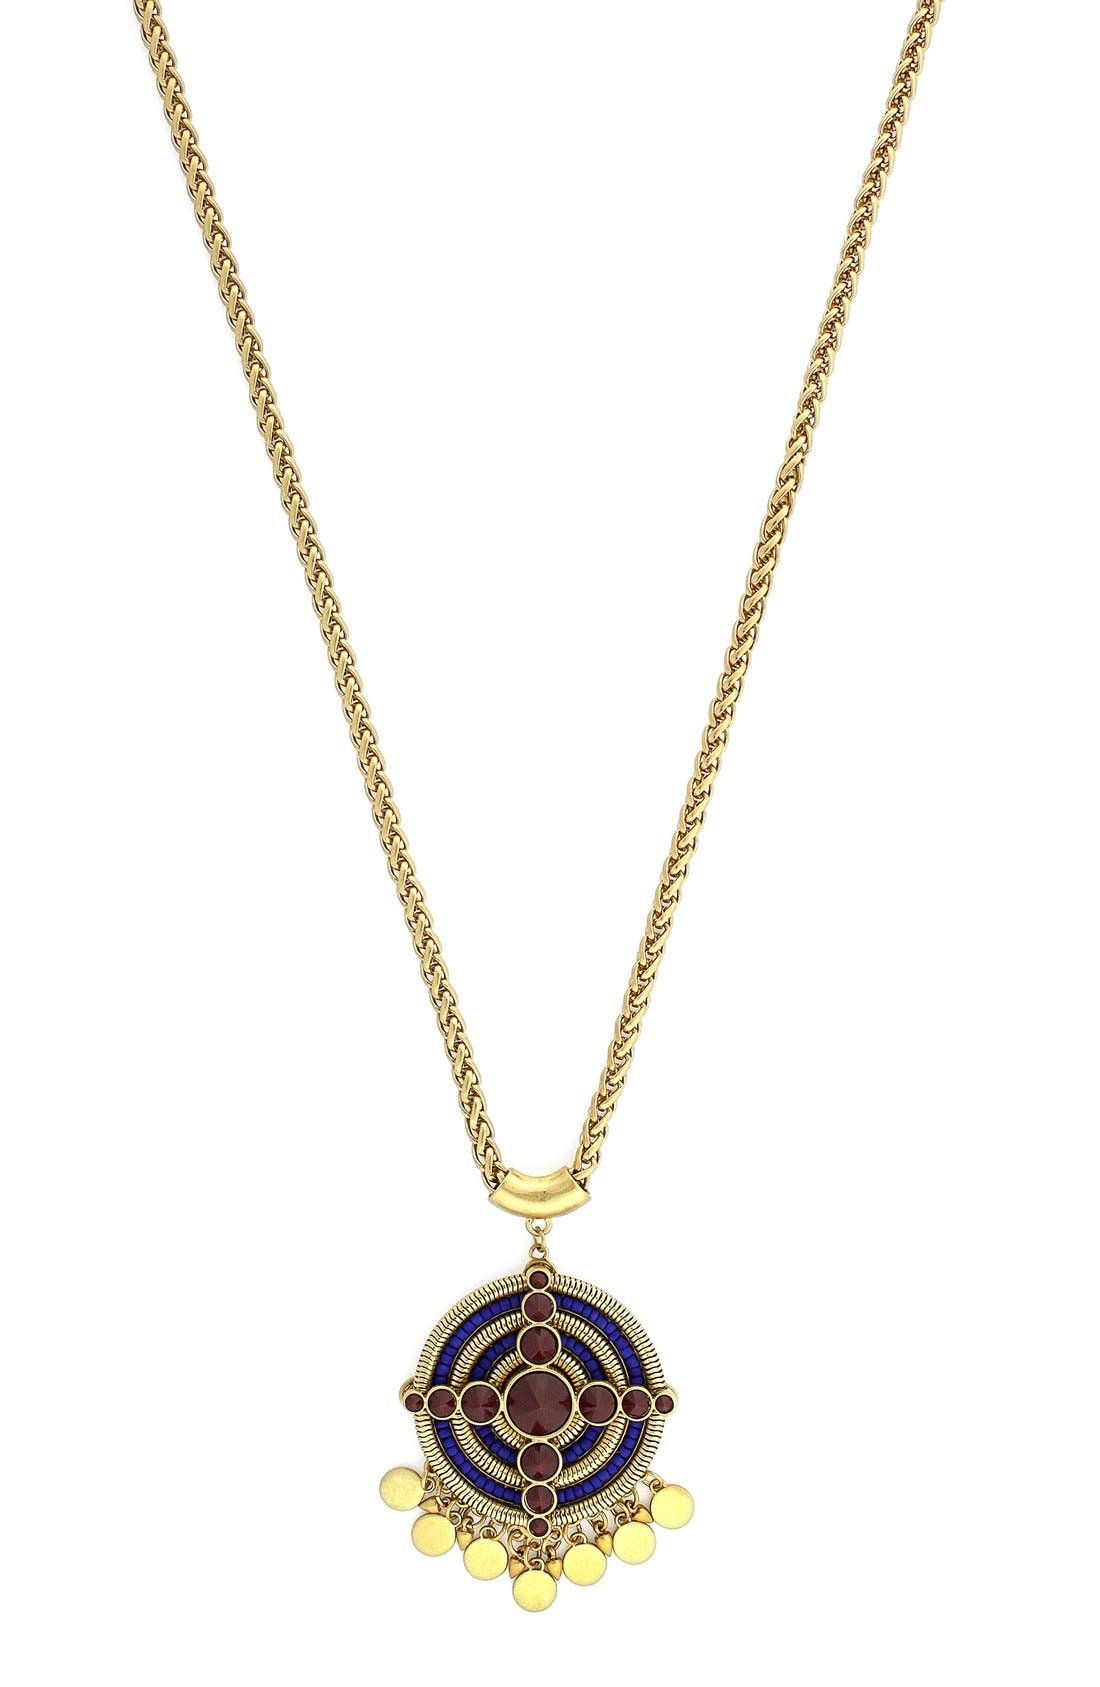 Main Image - Vince Camuto 'Belle of the Bazaar' Pendant Necklace